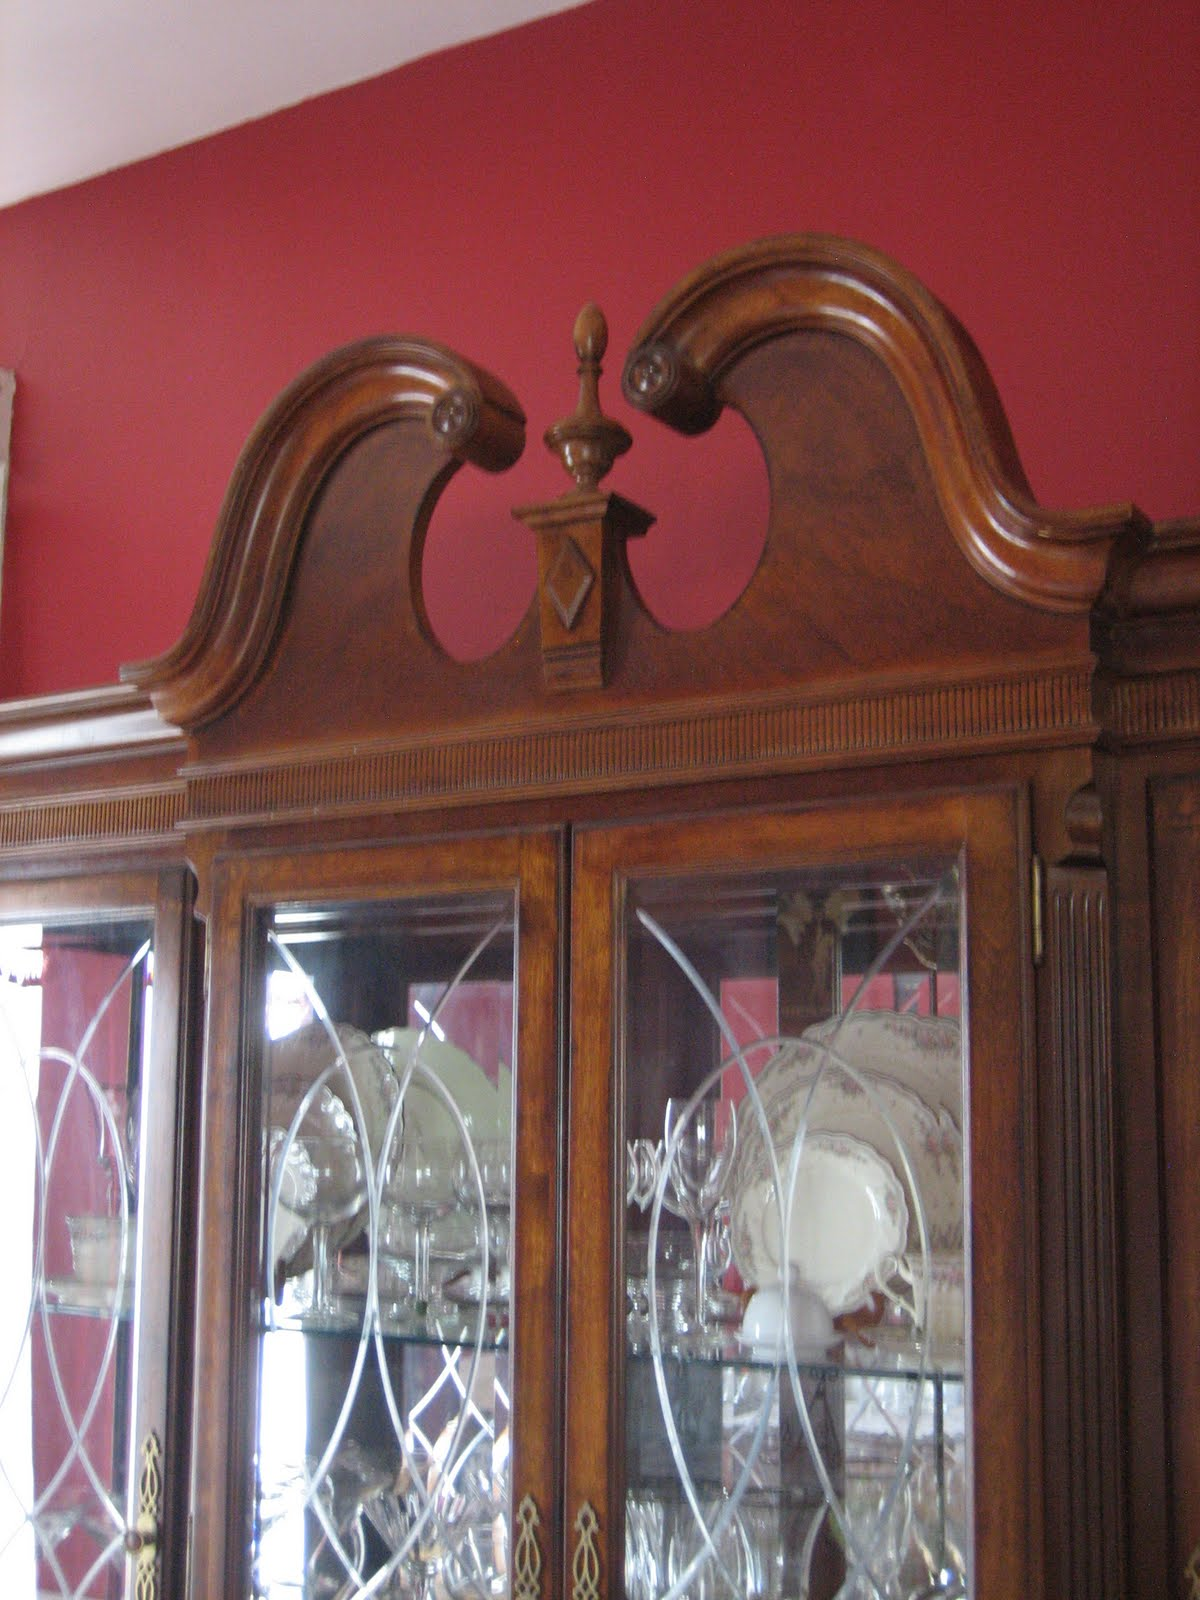 Moving On To Furniture, In Our Dining Room We Have This Large China Cabinet.  Another Word For A China Cabinet Is A Vitrine. Some People Call Their China  Or ...